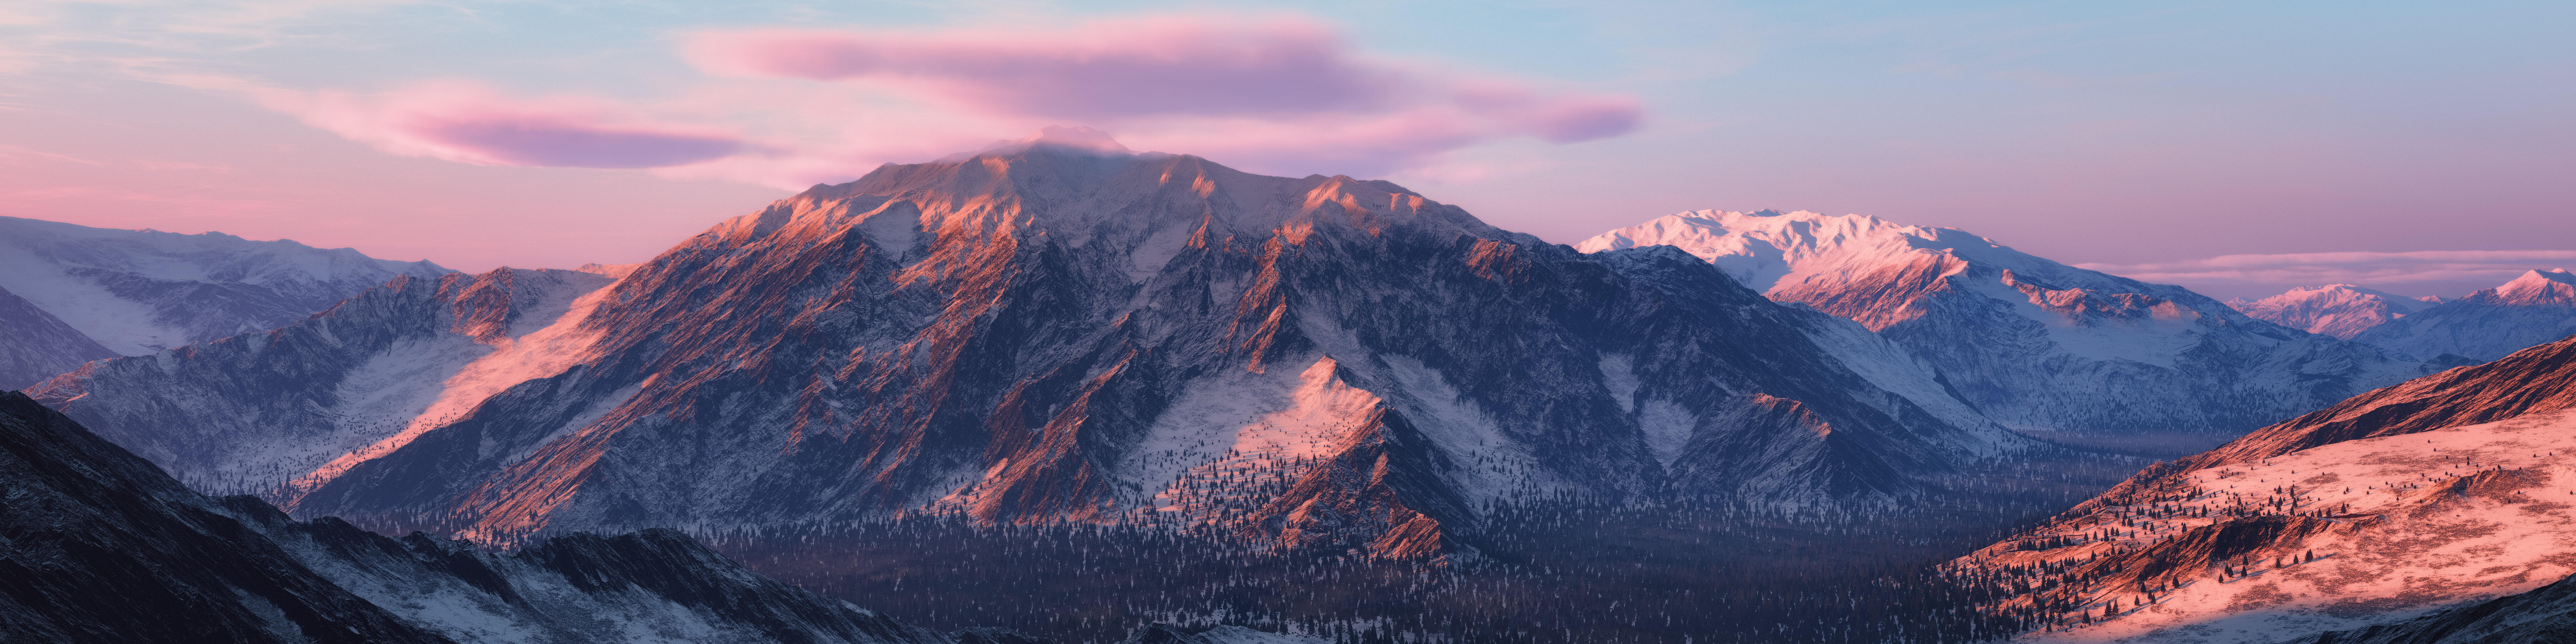 Panoramic view of a colorful pink and purple mountain landscape